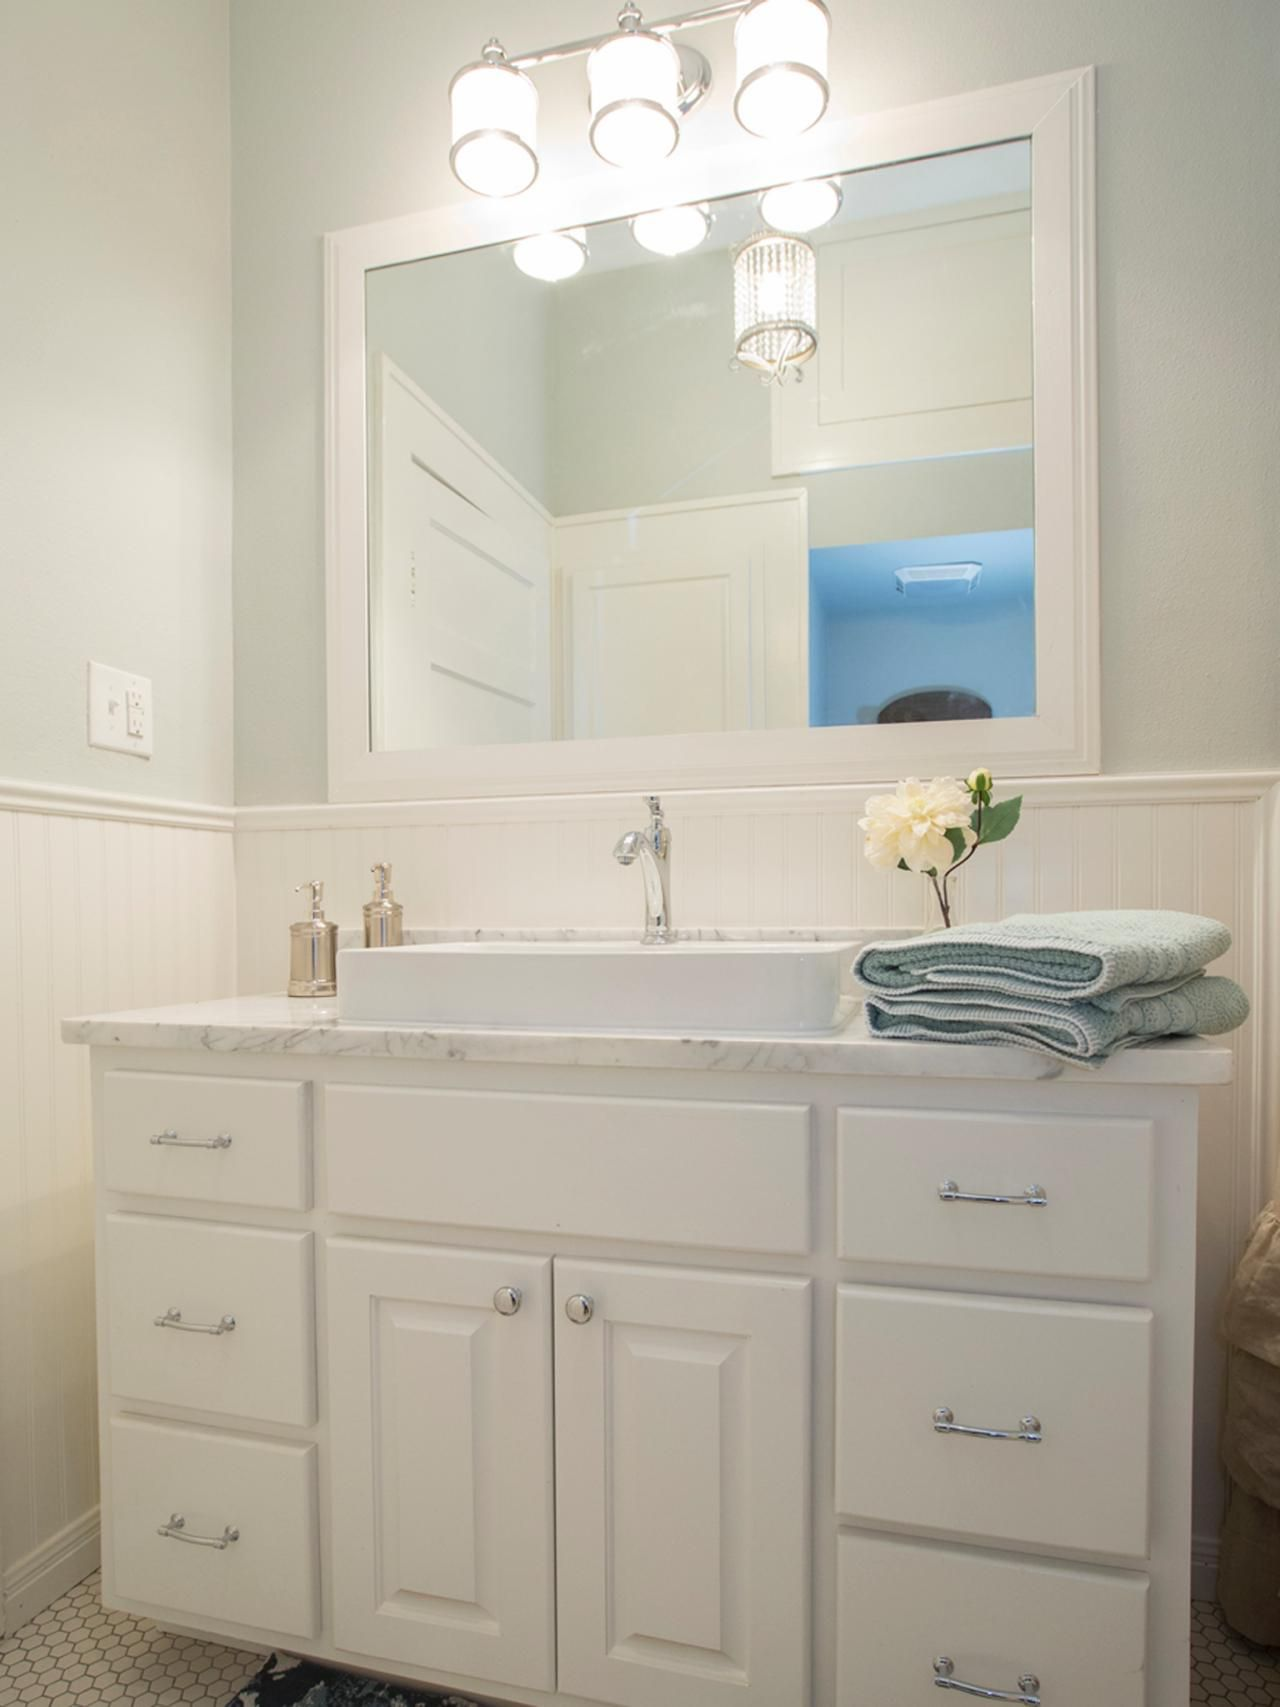 Bathroom Remodels On Fixer Upper fixer upper's best bathroom flips | joanna gaines, hgtv and flipping